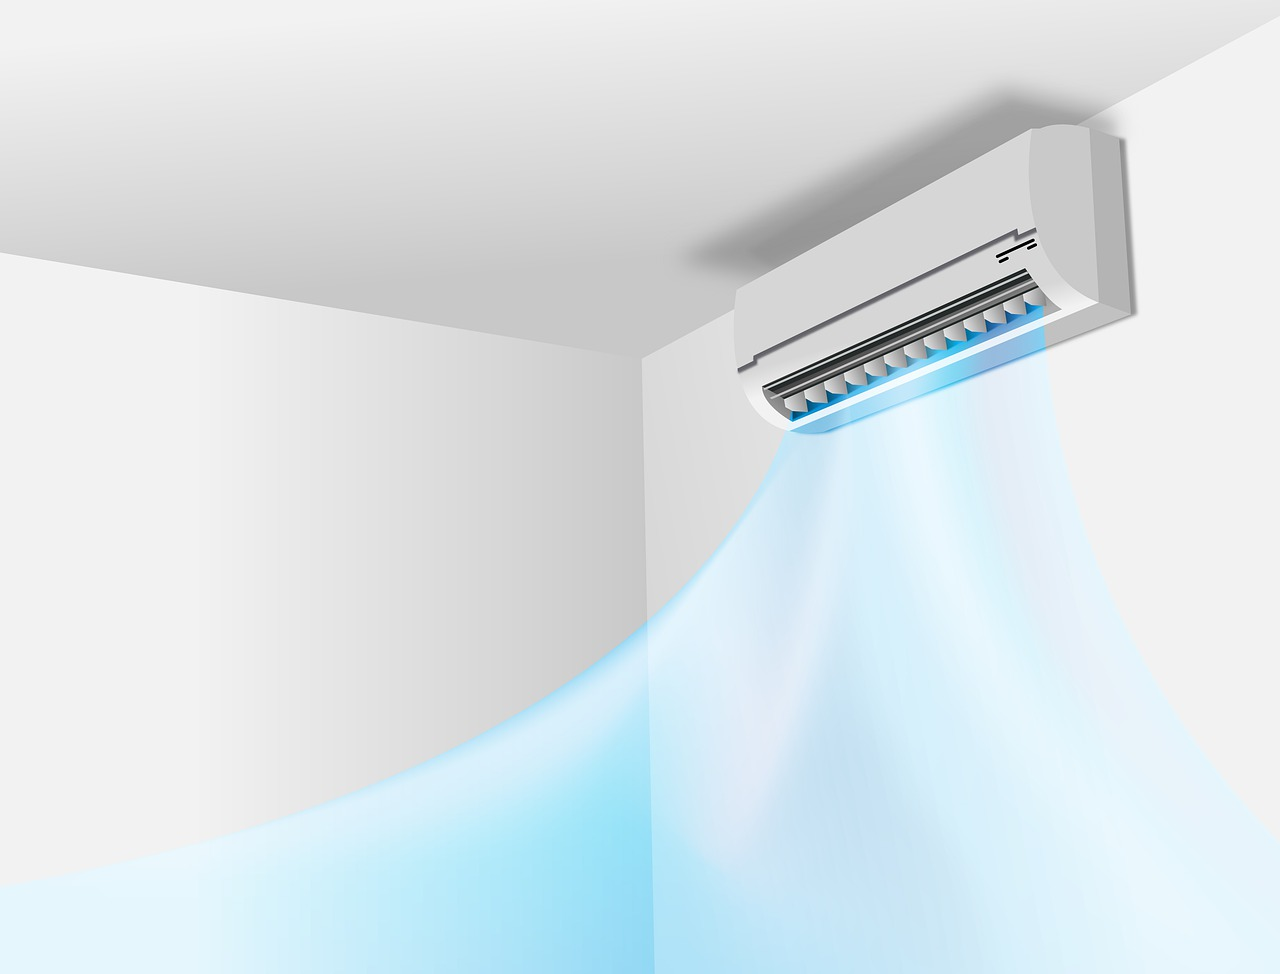 3-essential-tips-for-finding-the-best-hvac-system-complete-home-service-pros-clear-advantage-home-services